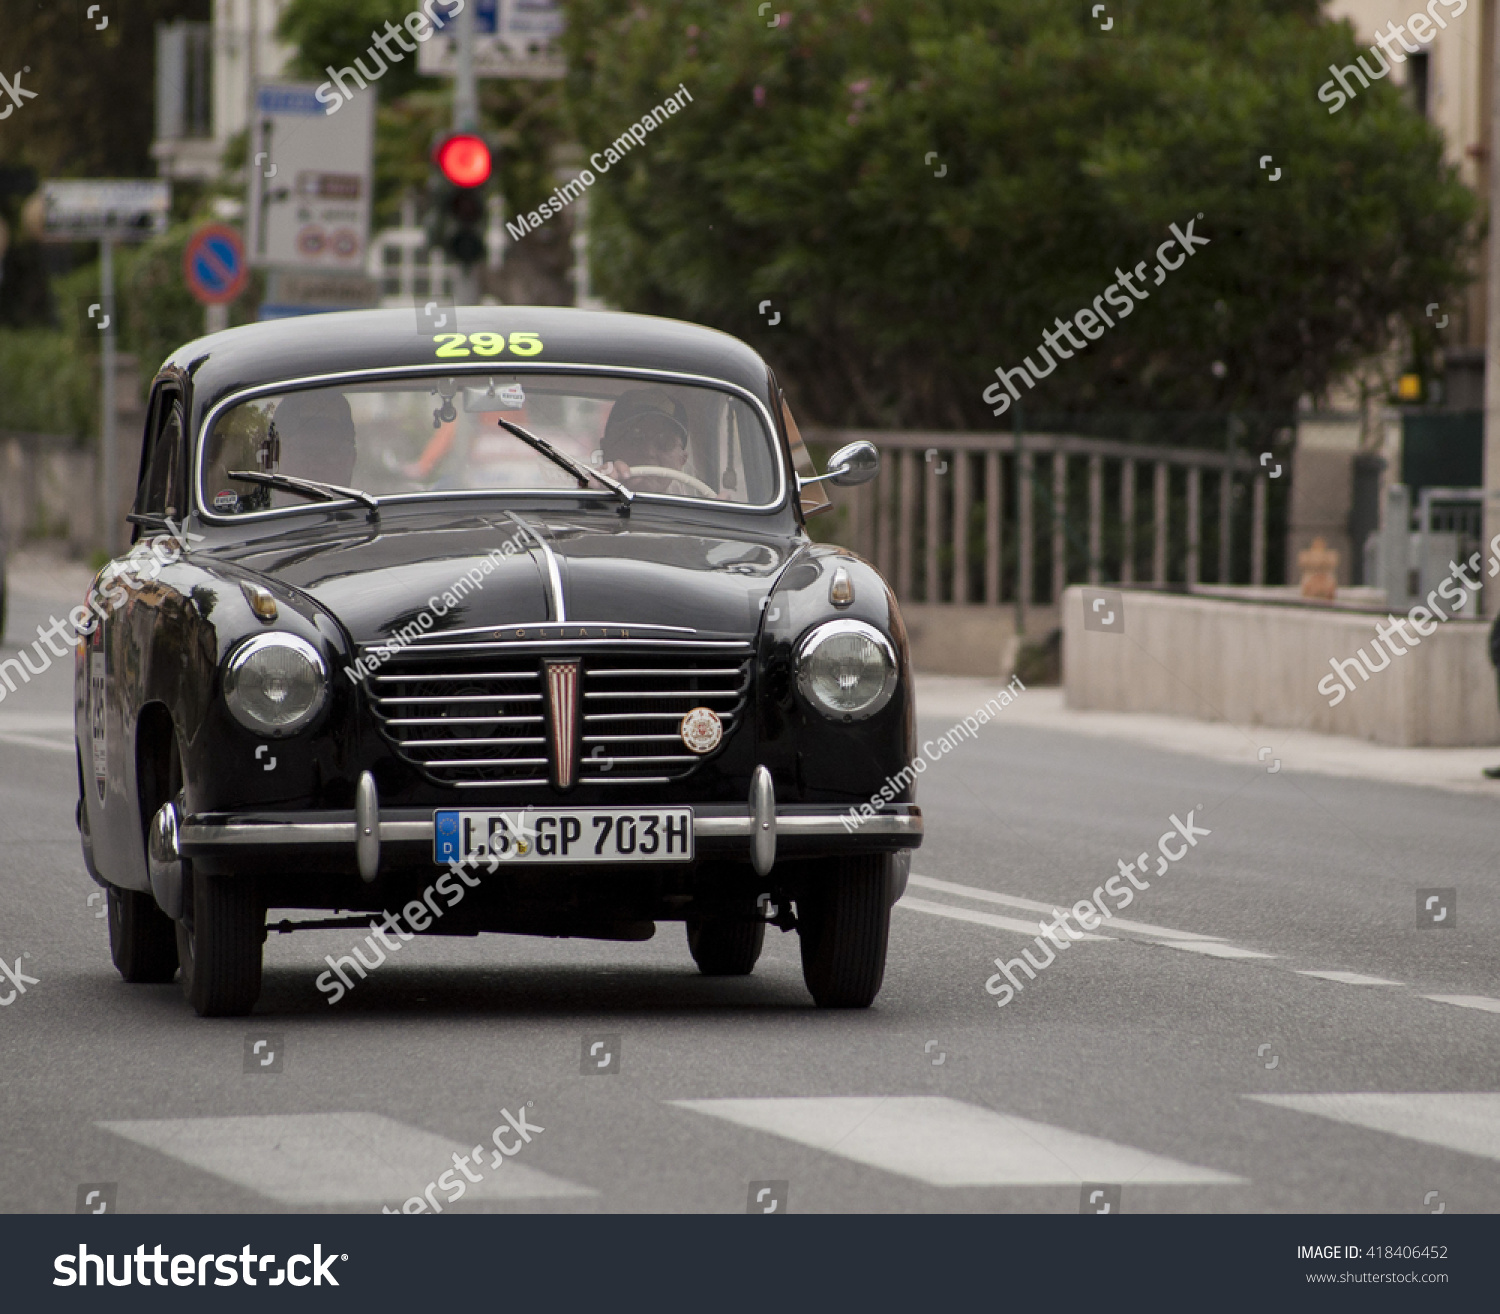 Fano Italy May 16 Goliath Gp Stock Photo 418406452 - Shutterstock